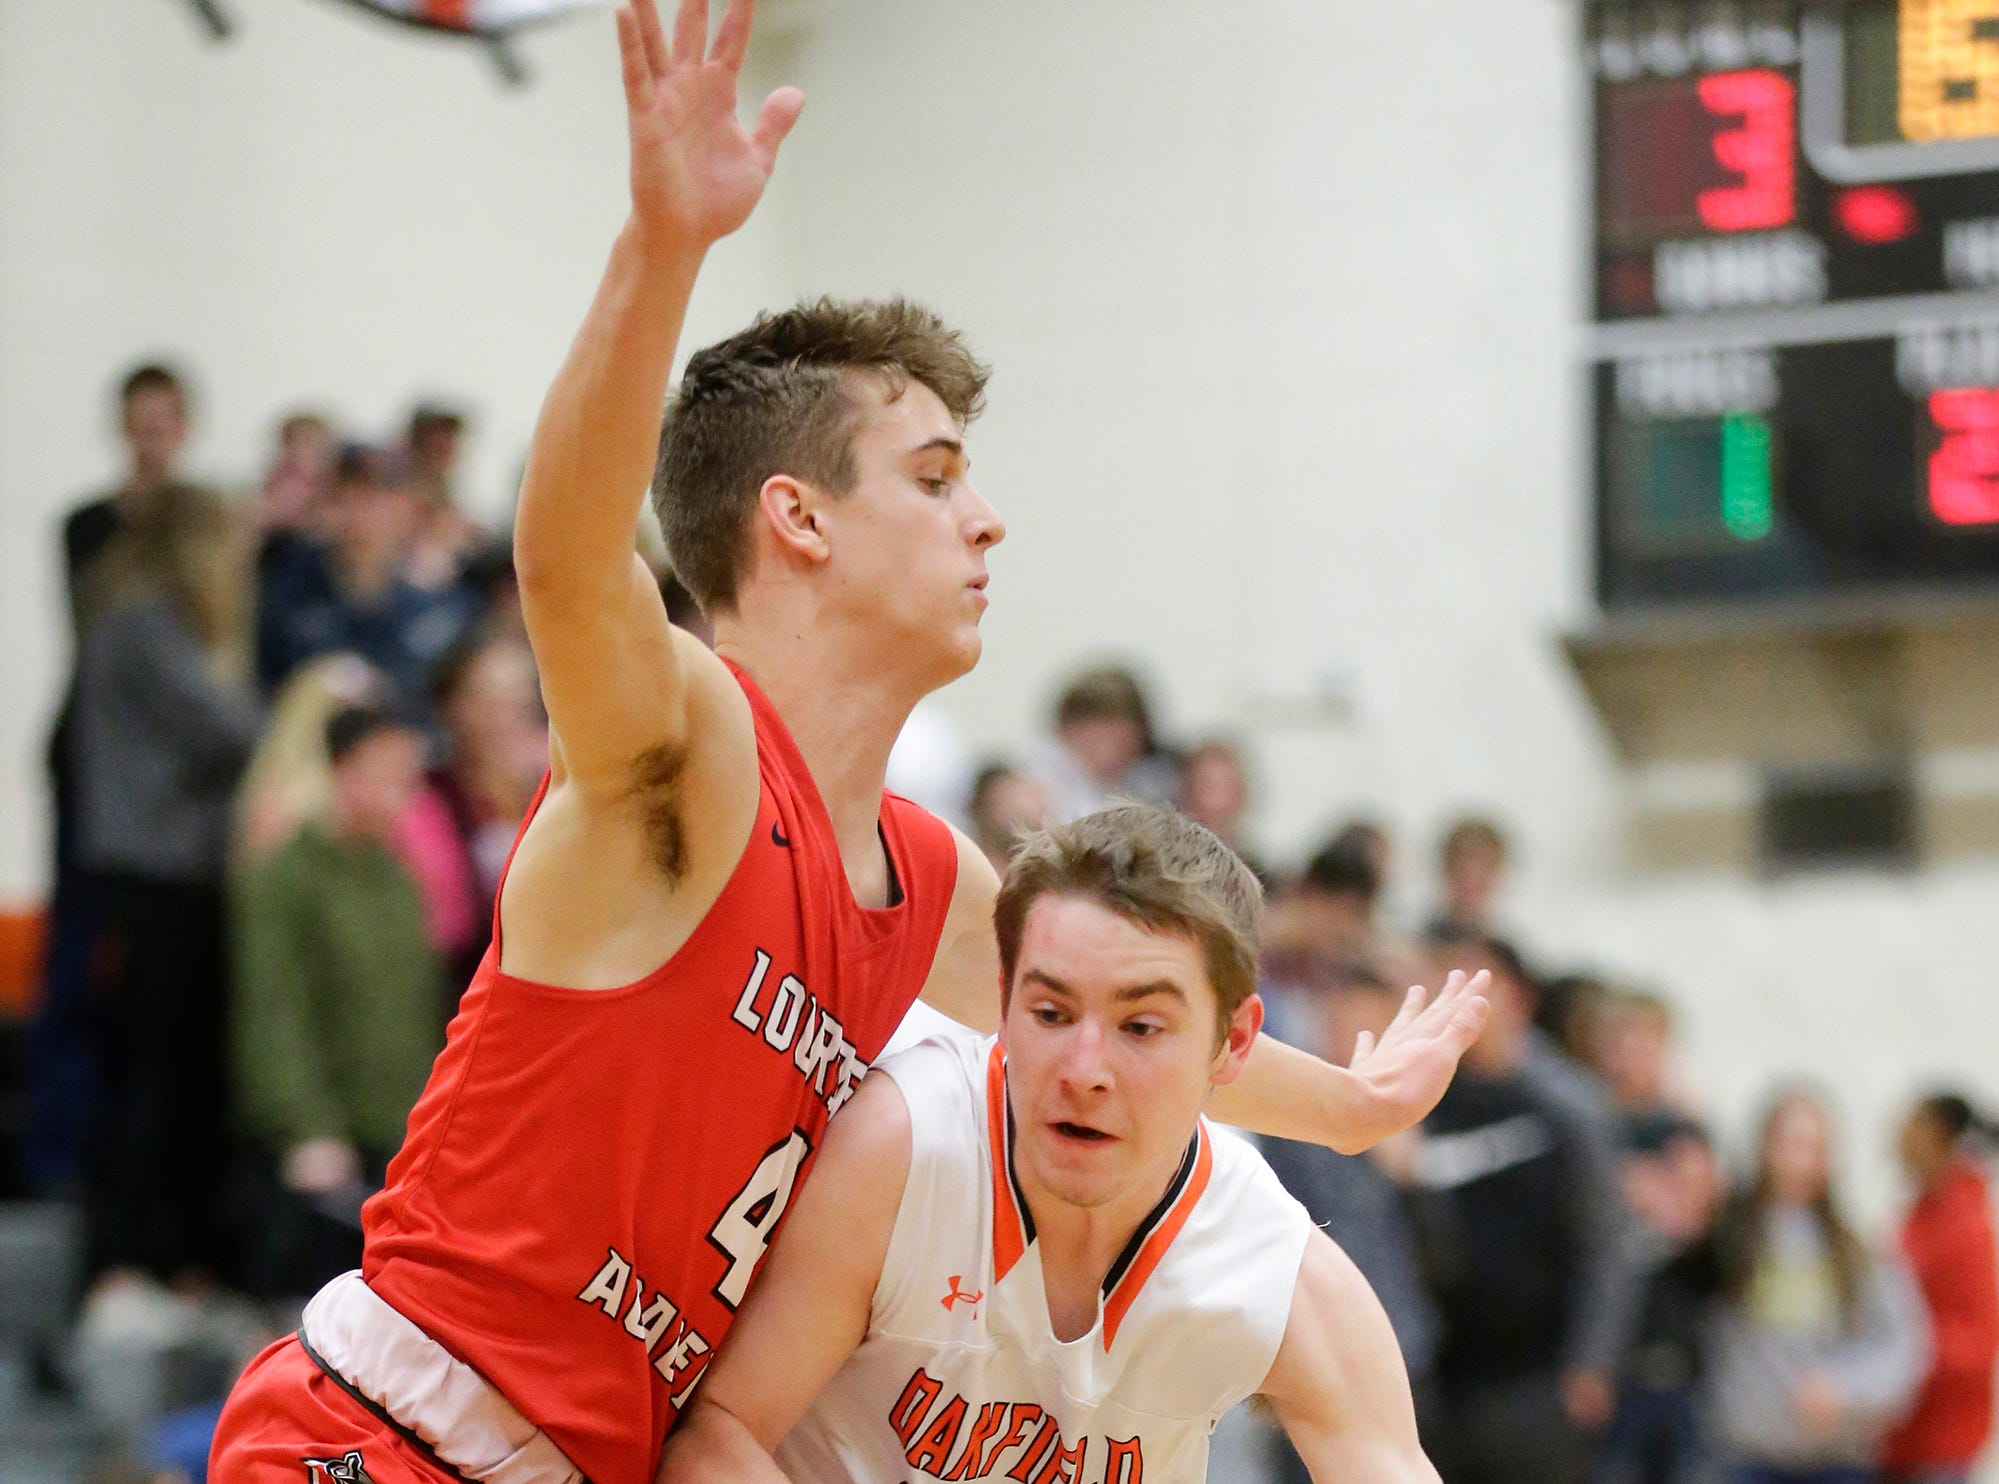 Oakfield High School boys basketball's Max Margelofsky works his way towards the basket against Lourdes Academy's Preston Ruedinger during their game Thursday, January 24, 2019 in Oakfield. Lourdes Academy won the game 83-48. Doug Raflik/USA TODAY NETWORK-Wisconsin